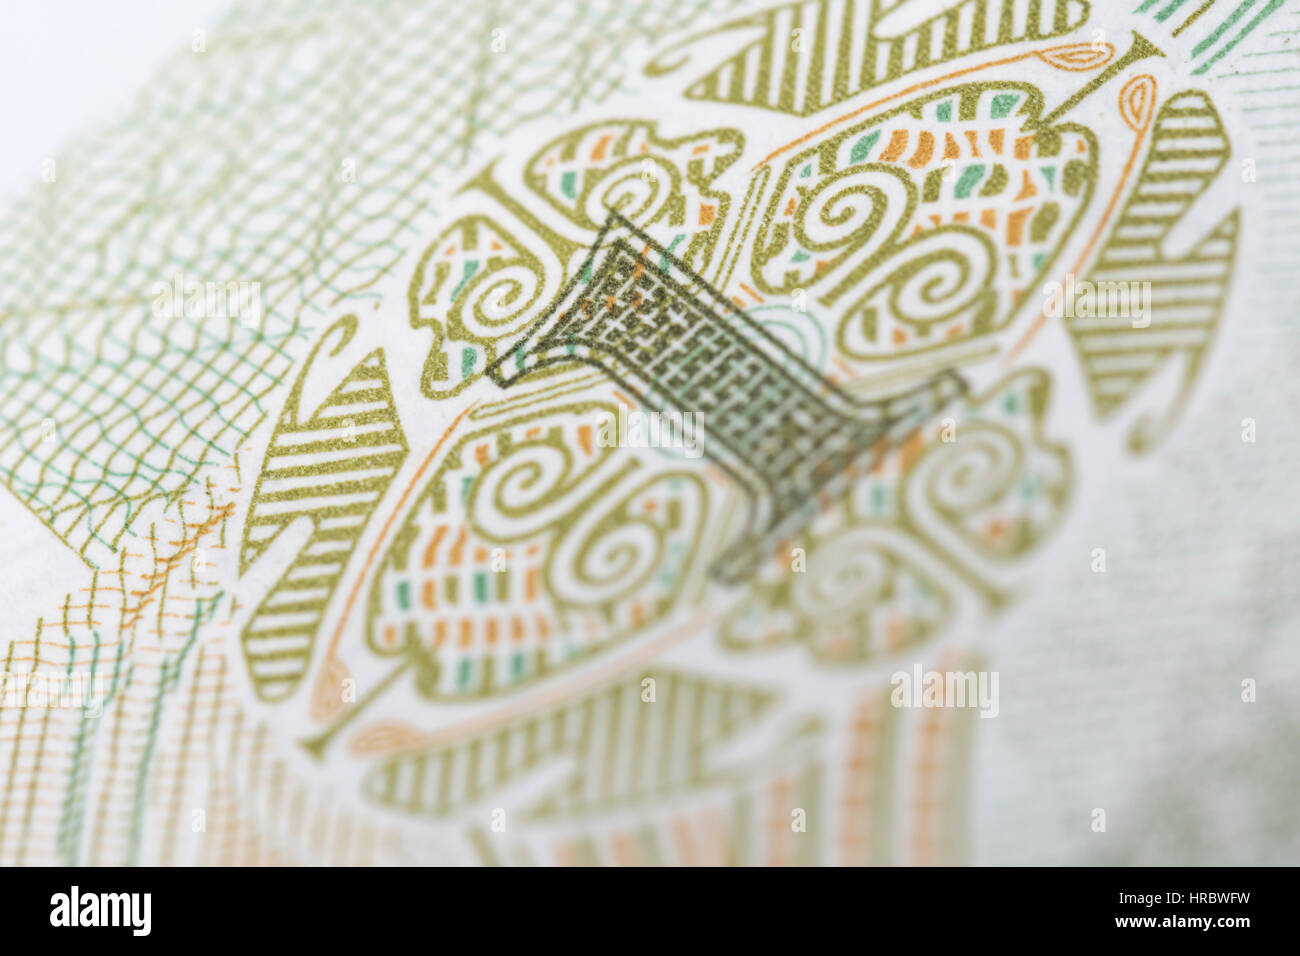 Macro photo detail of Chinese 1 Yuan banknote. Metaphor for Chinese economy, spending power and consumerism. Stock Photo